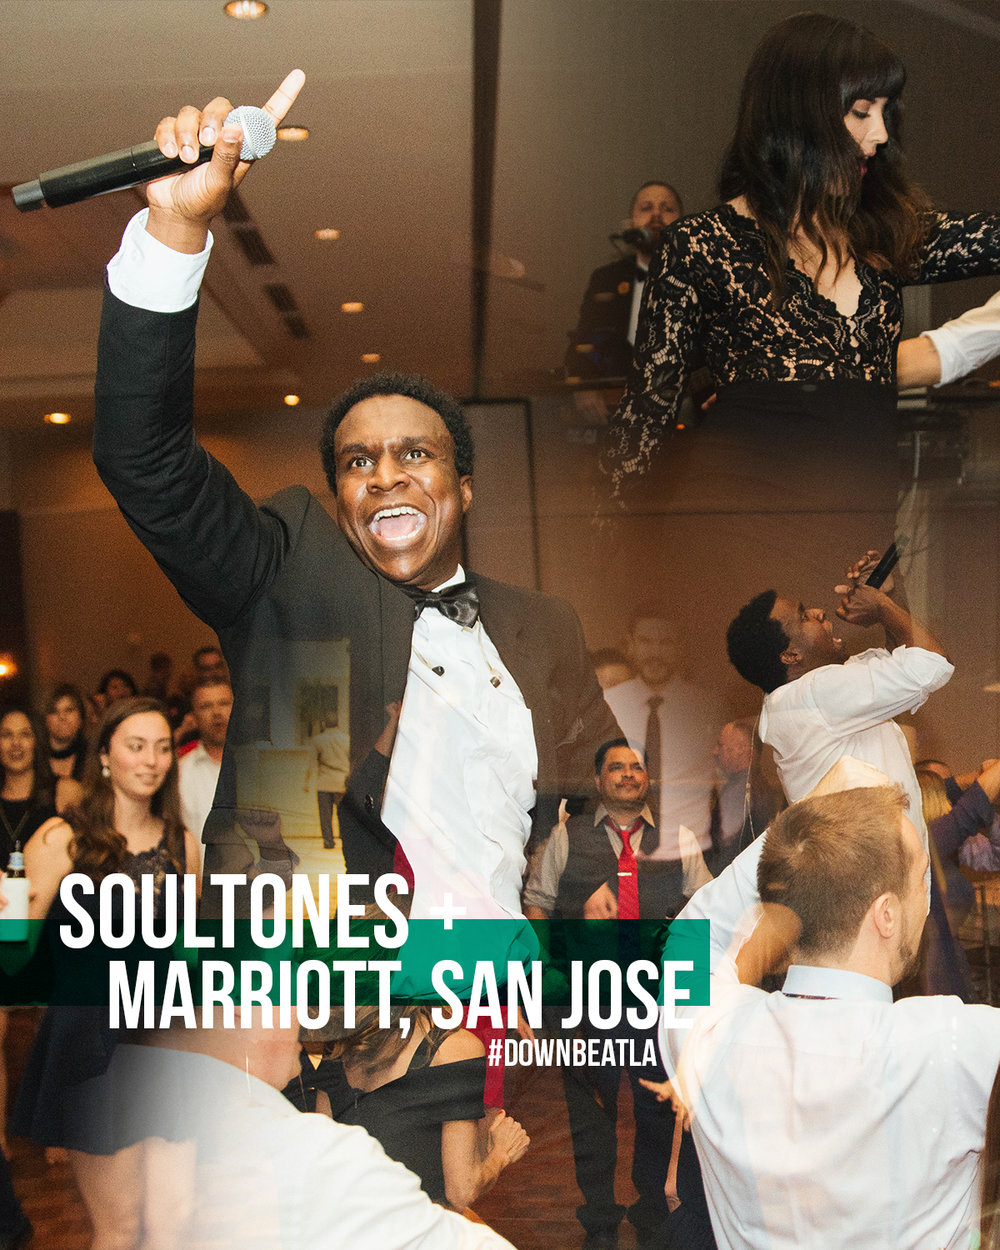 Soultones-Marriott-2.jpg